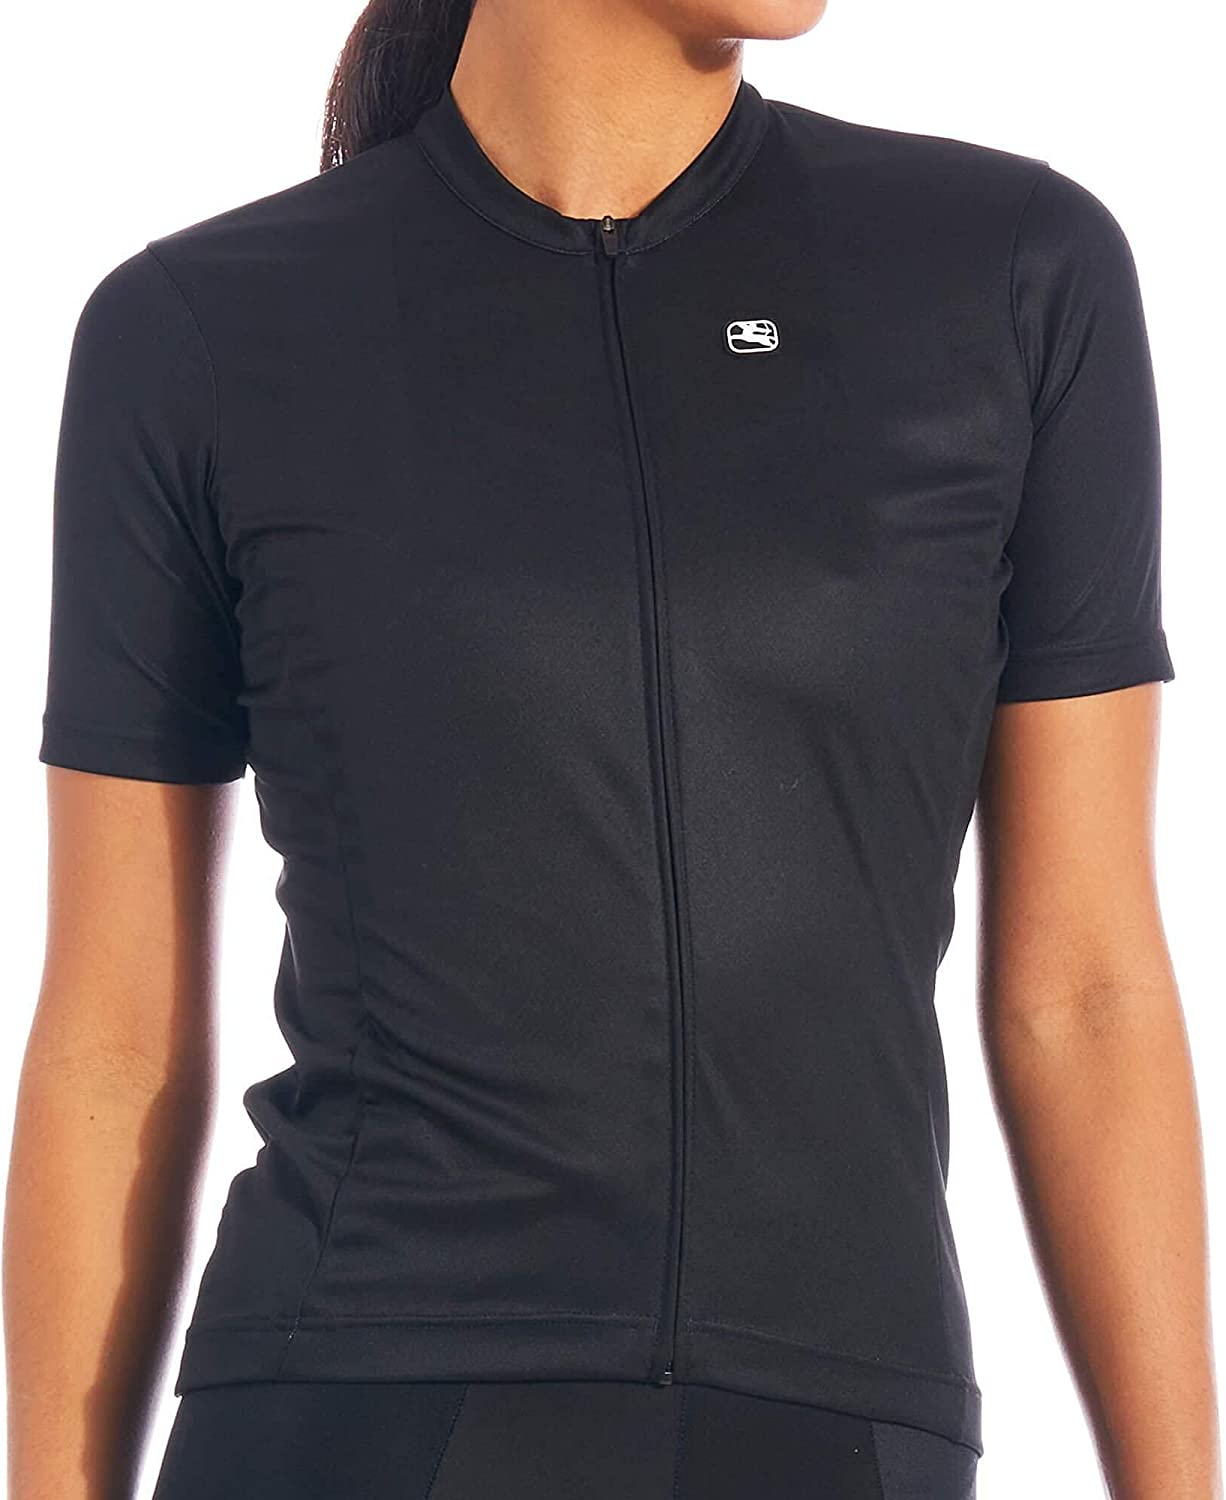 Giordana Free Shipping Cheap Bargain Gift Fusion Special sale item Women's Short Cycling Jersey Sleeve